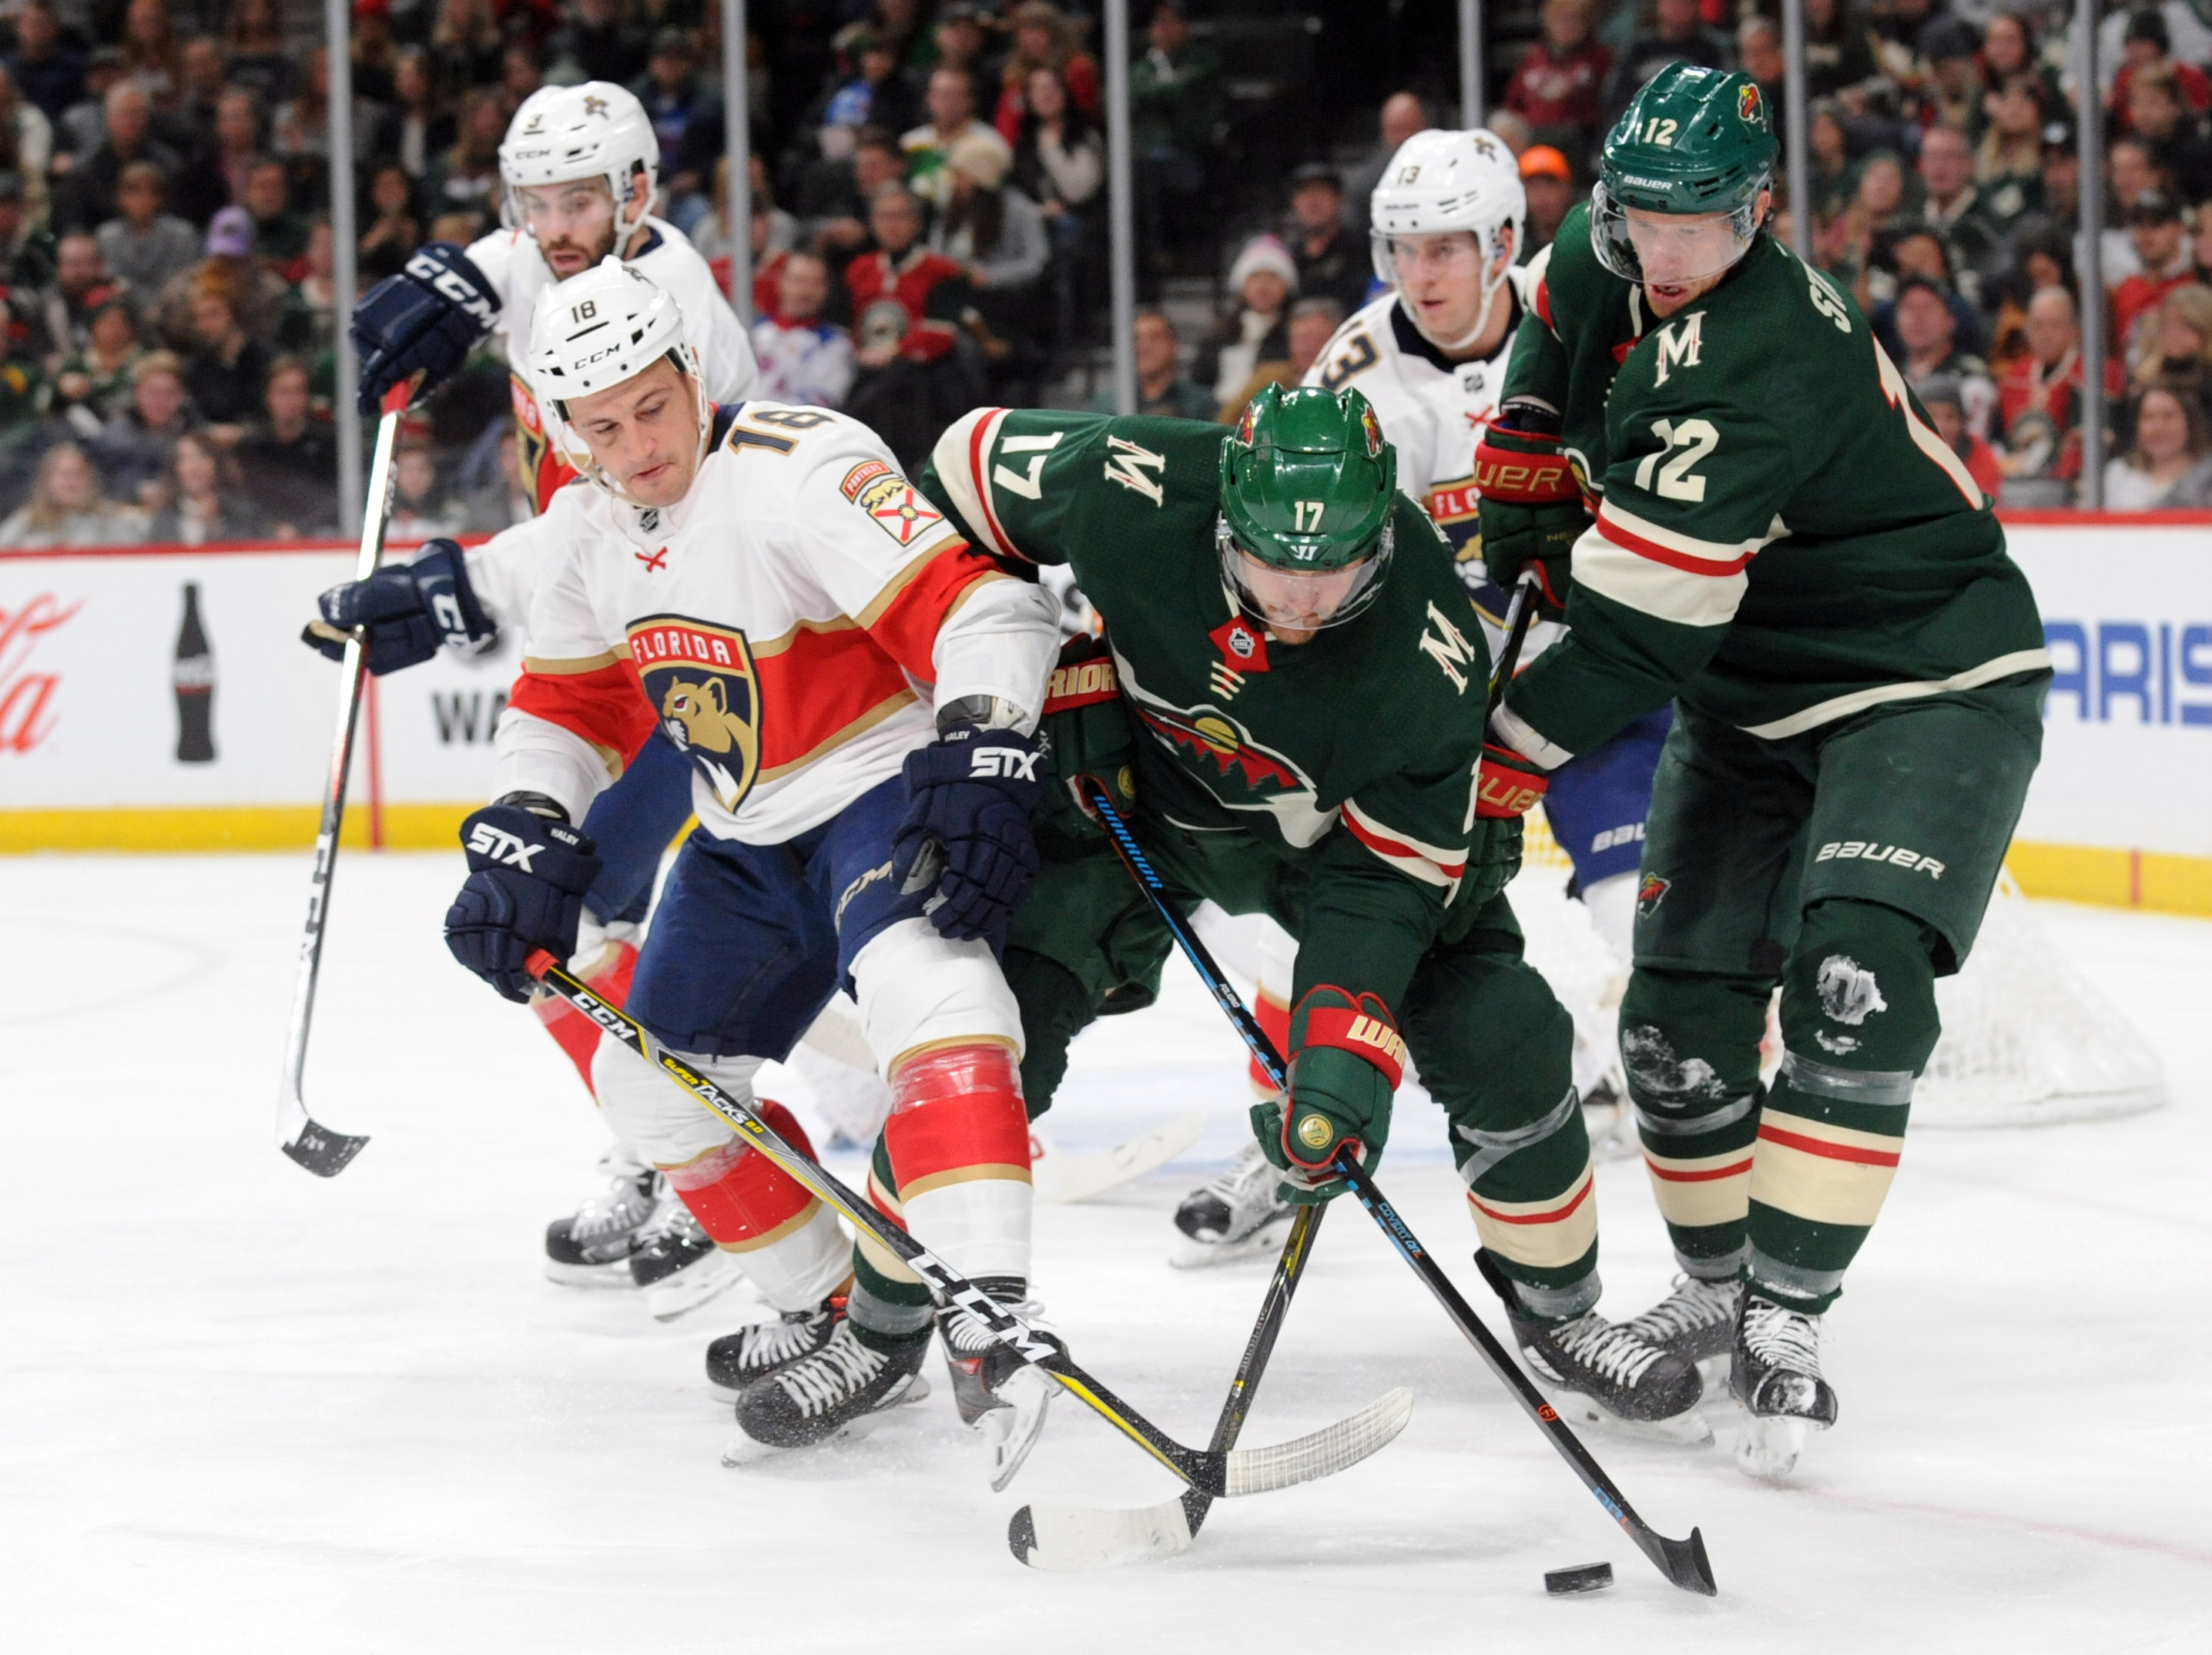 Game Preview: Minnesota Wild vs. Florida Panthers 12/13/18 @ 7:00PM CST at Xcel Energy Center